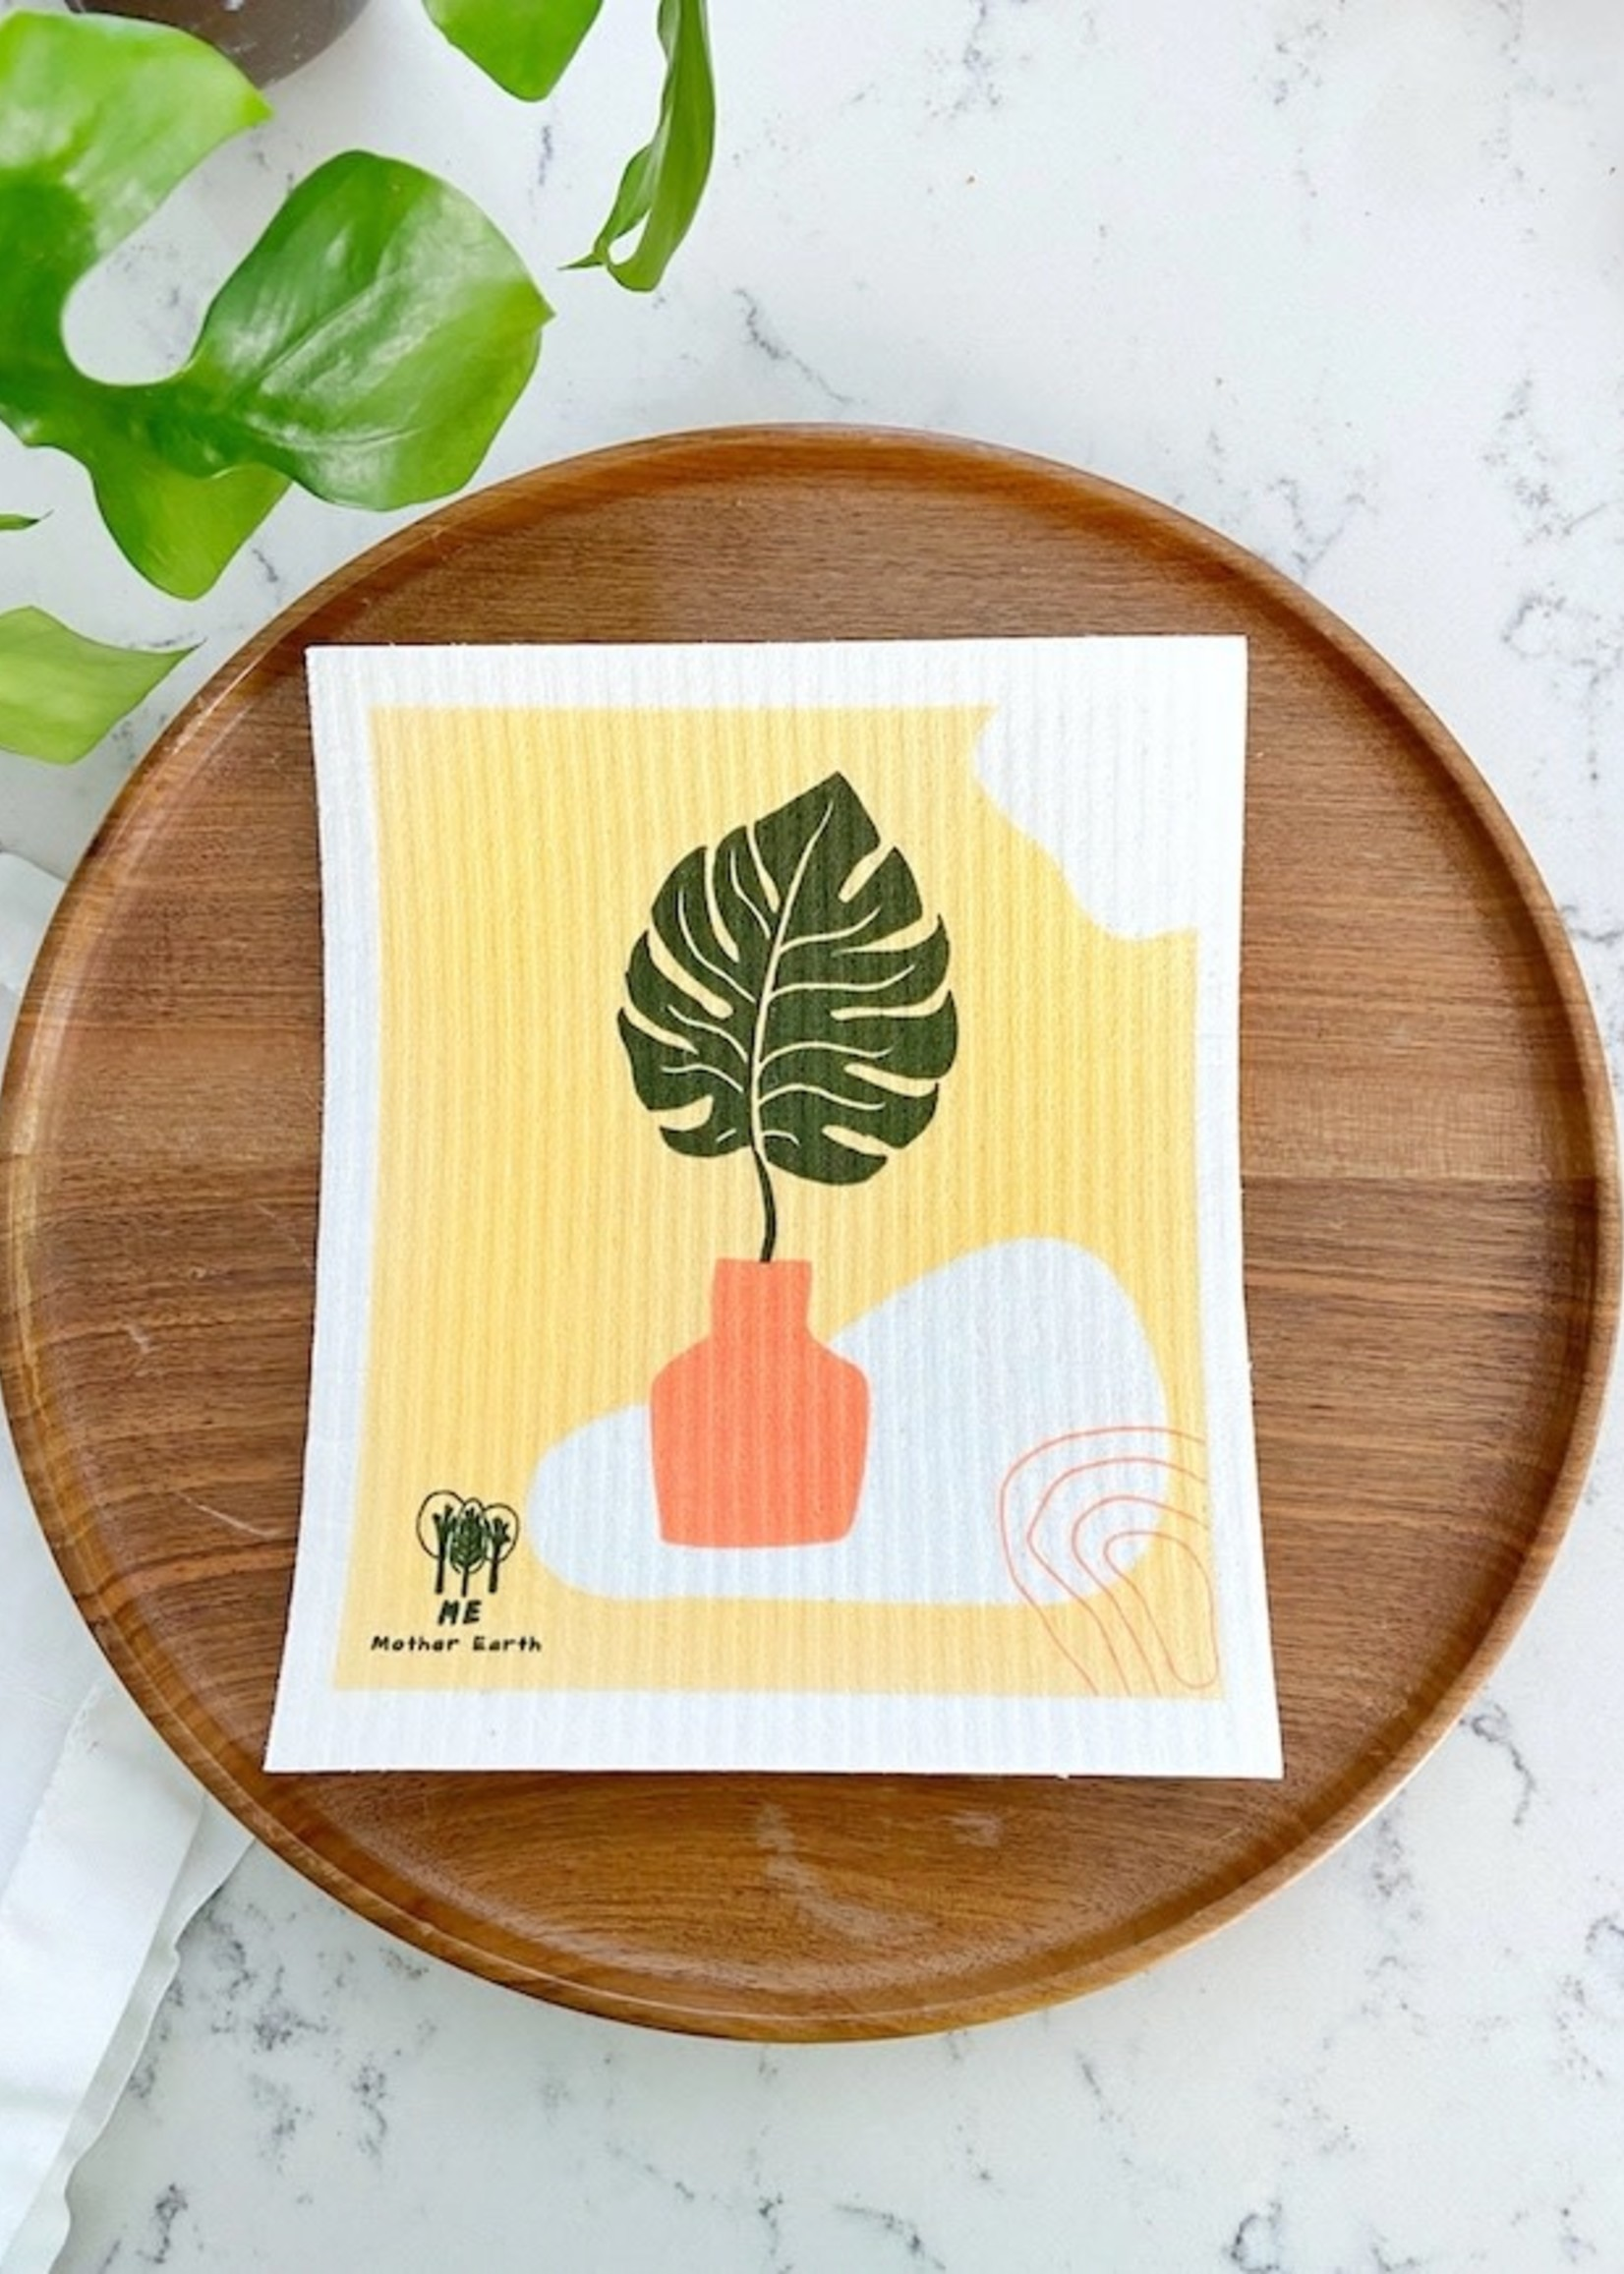 Me.Mother Earth Swedish Dish Cloths: 3-pack